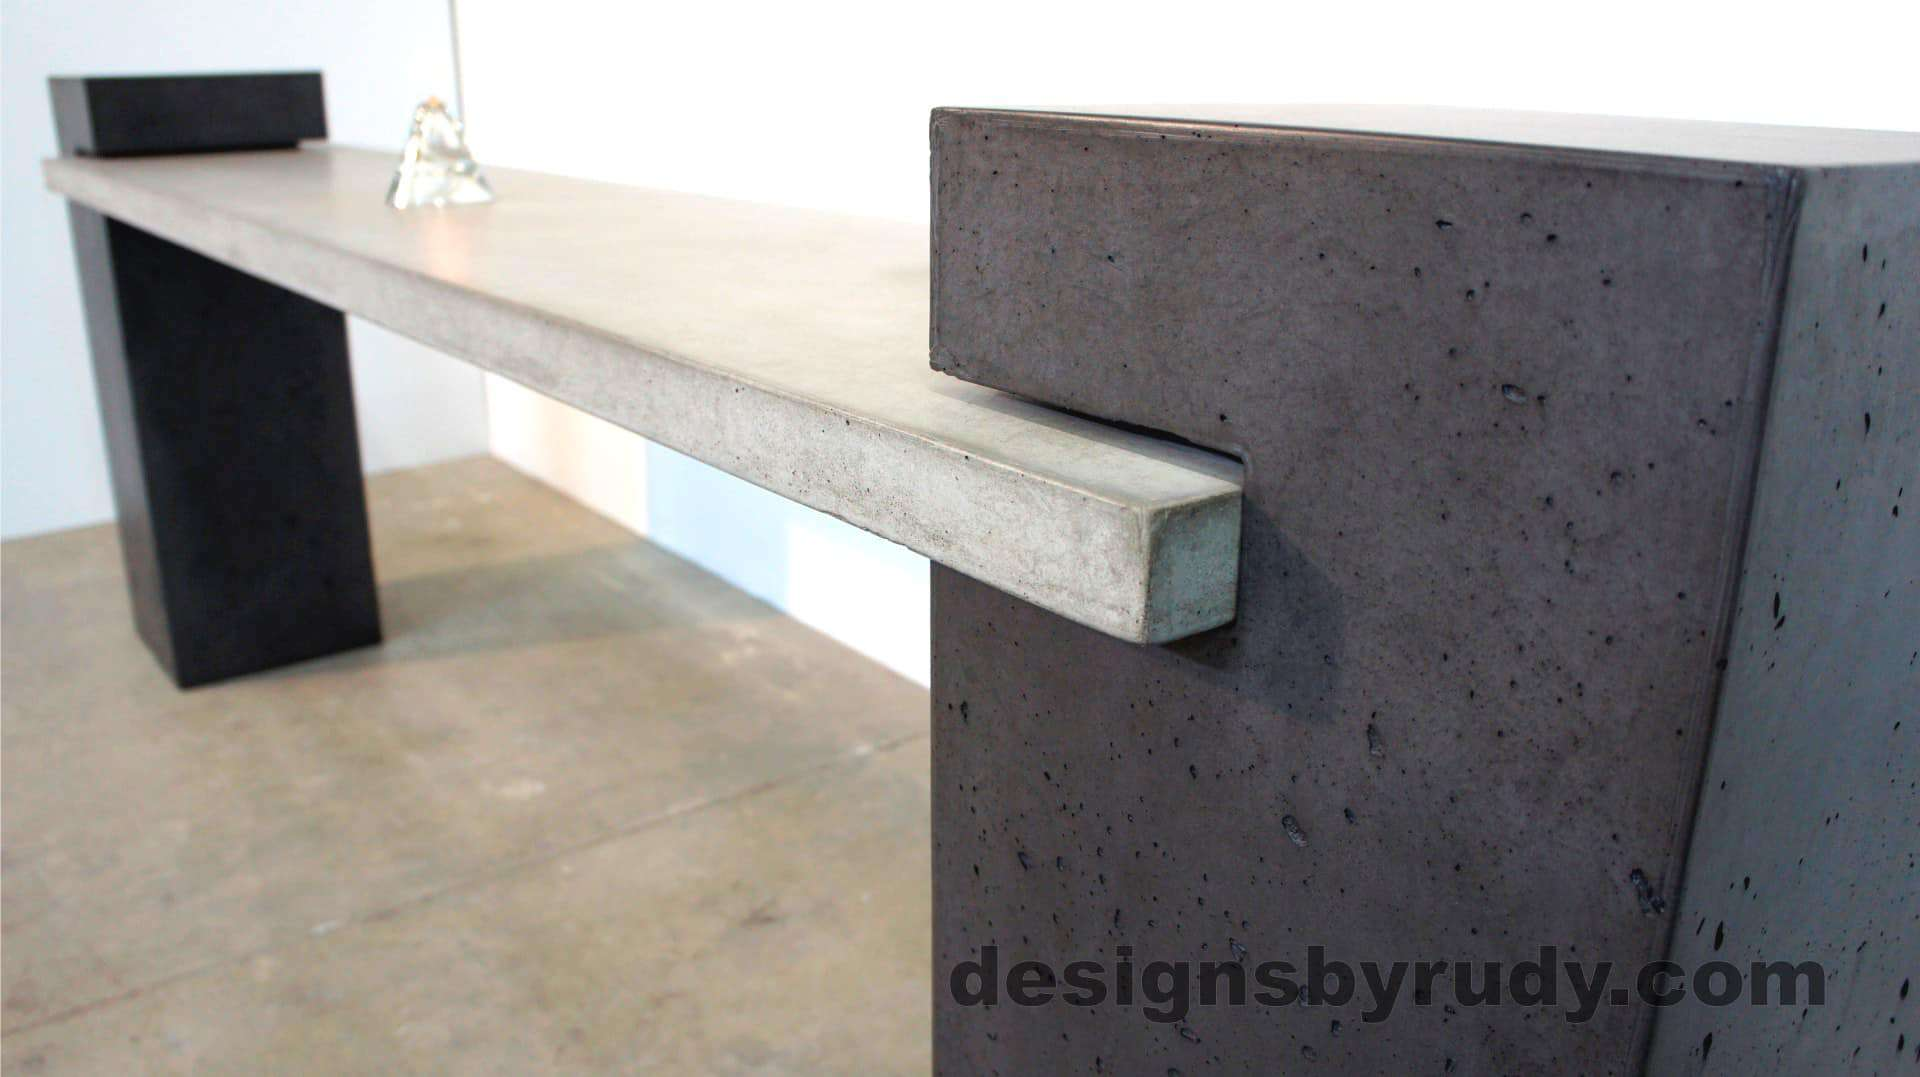 Side view of a pedestal and concrete slab joint - Concrete Buffet Table designed by Designs by Rudy